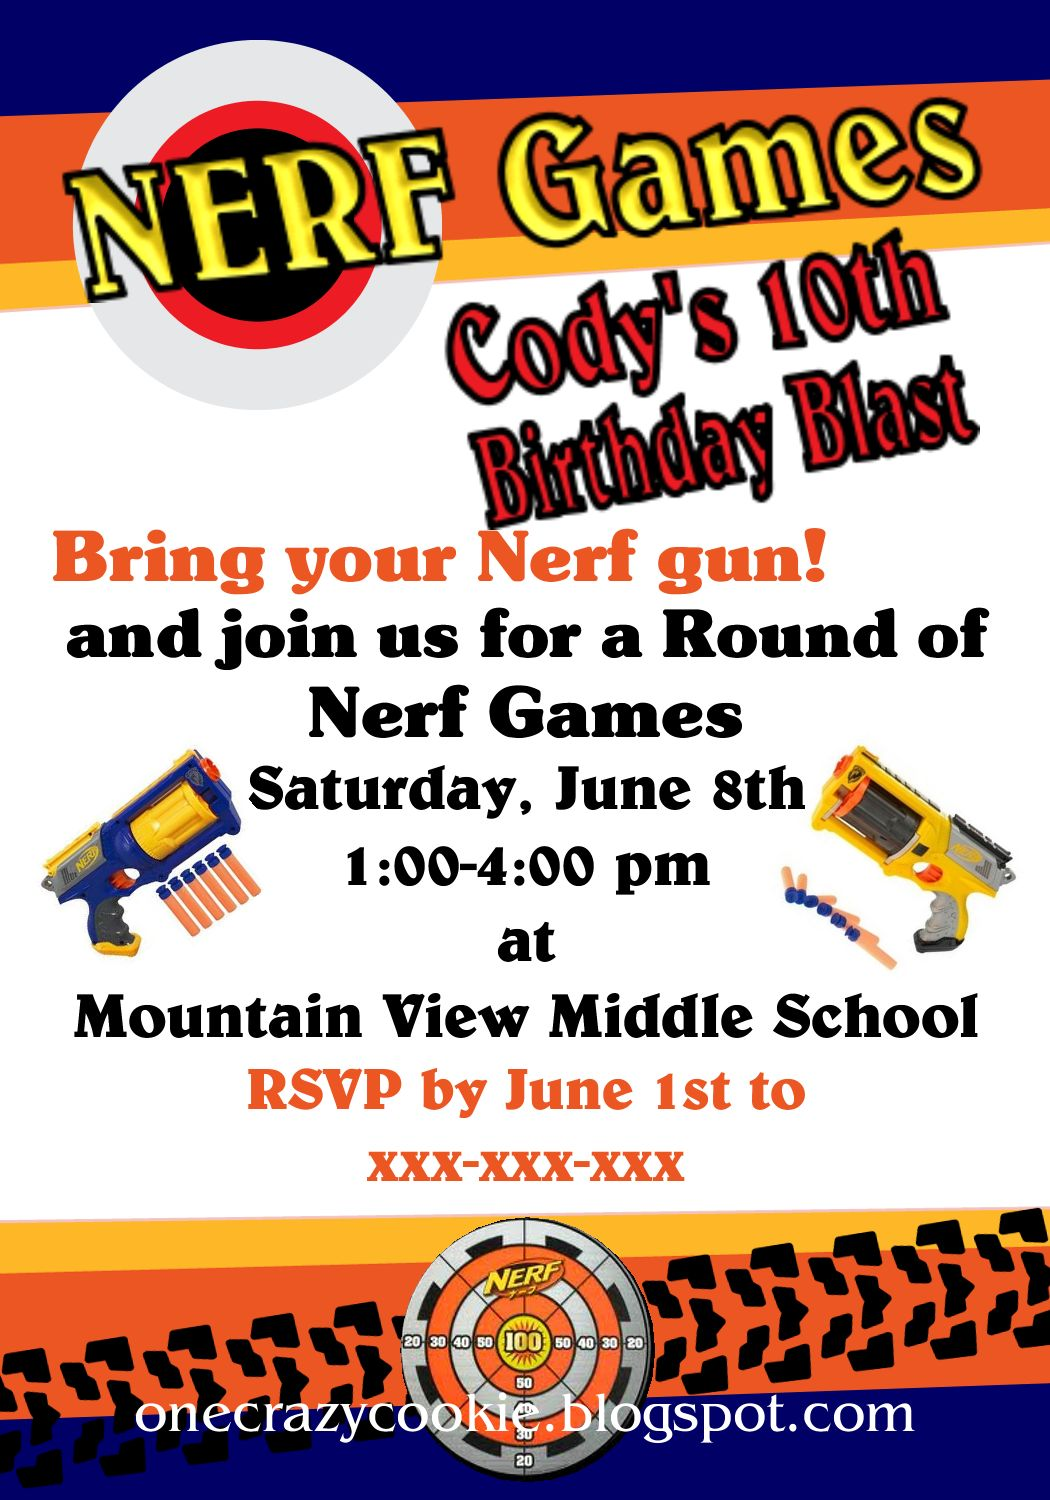 Nerf Party Invitations and get inspiration to create nice invitation ideas